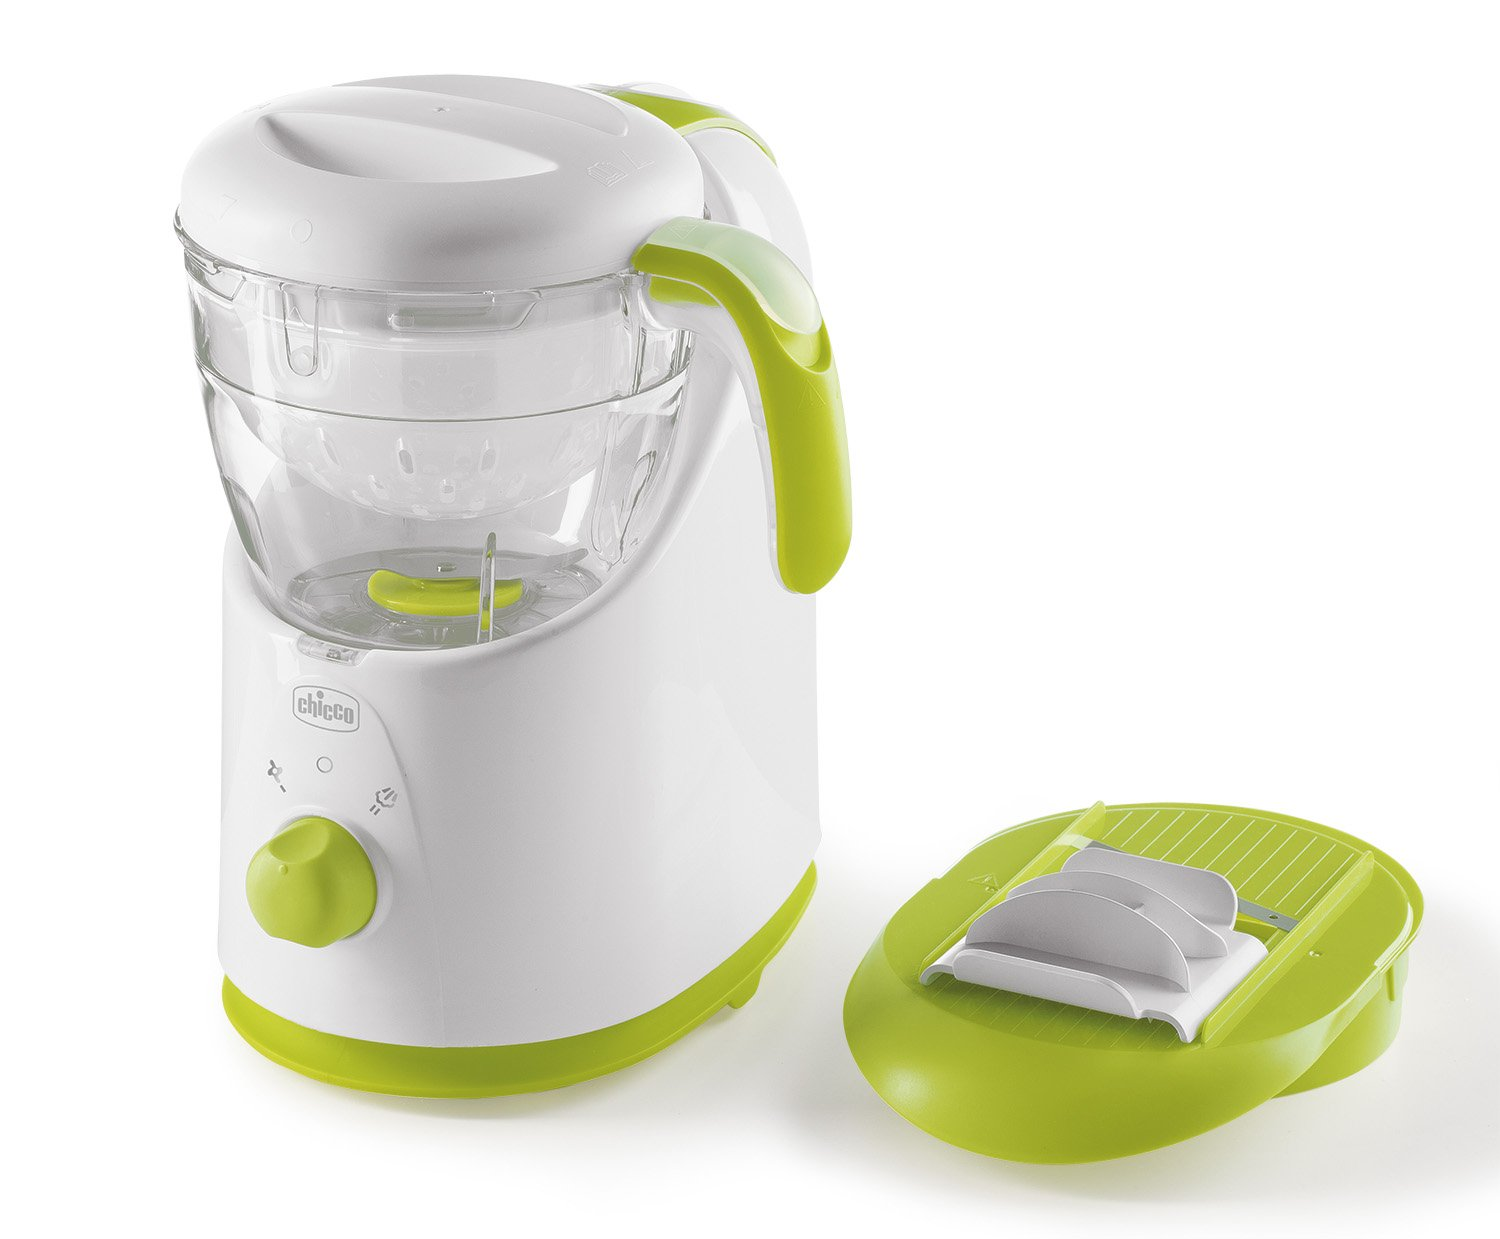 Chicco Easy Meal Robot Cuiseur Vapeur Mixeur CHIN3 00007656000000